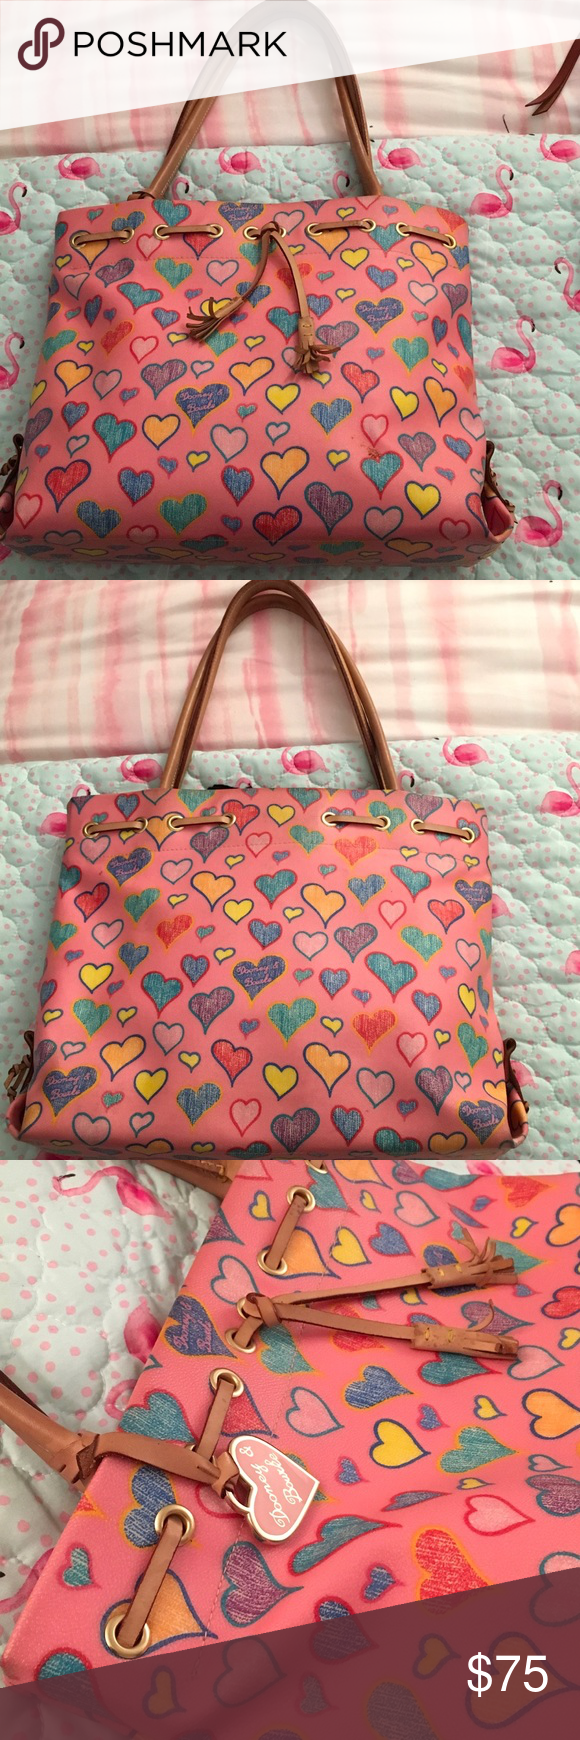 Dooney & Bourke Pink Crayon Heart Tote Hello friends, you are looking at a pristine condition used tote. Beautiful pink with colorful crayon hearts. Super cute. The trim and accents are in leather showing patina. Love, love, love...Don't miss out!  Dooney & Bourke Pink Crayon Heart Tote Hello friends, you are looking at a pristine condition used tote. Beautiful pink with colorful crayon hearts. Super cute. The trim and accents are in leather showing patina. Love, love, love...Don't miss out! #cr #crayonheart